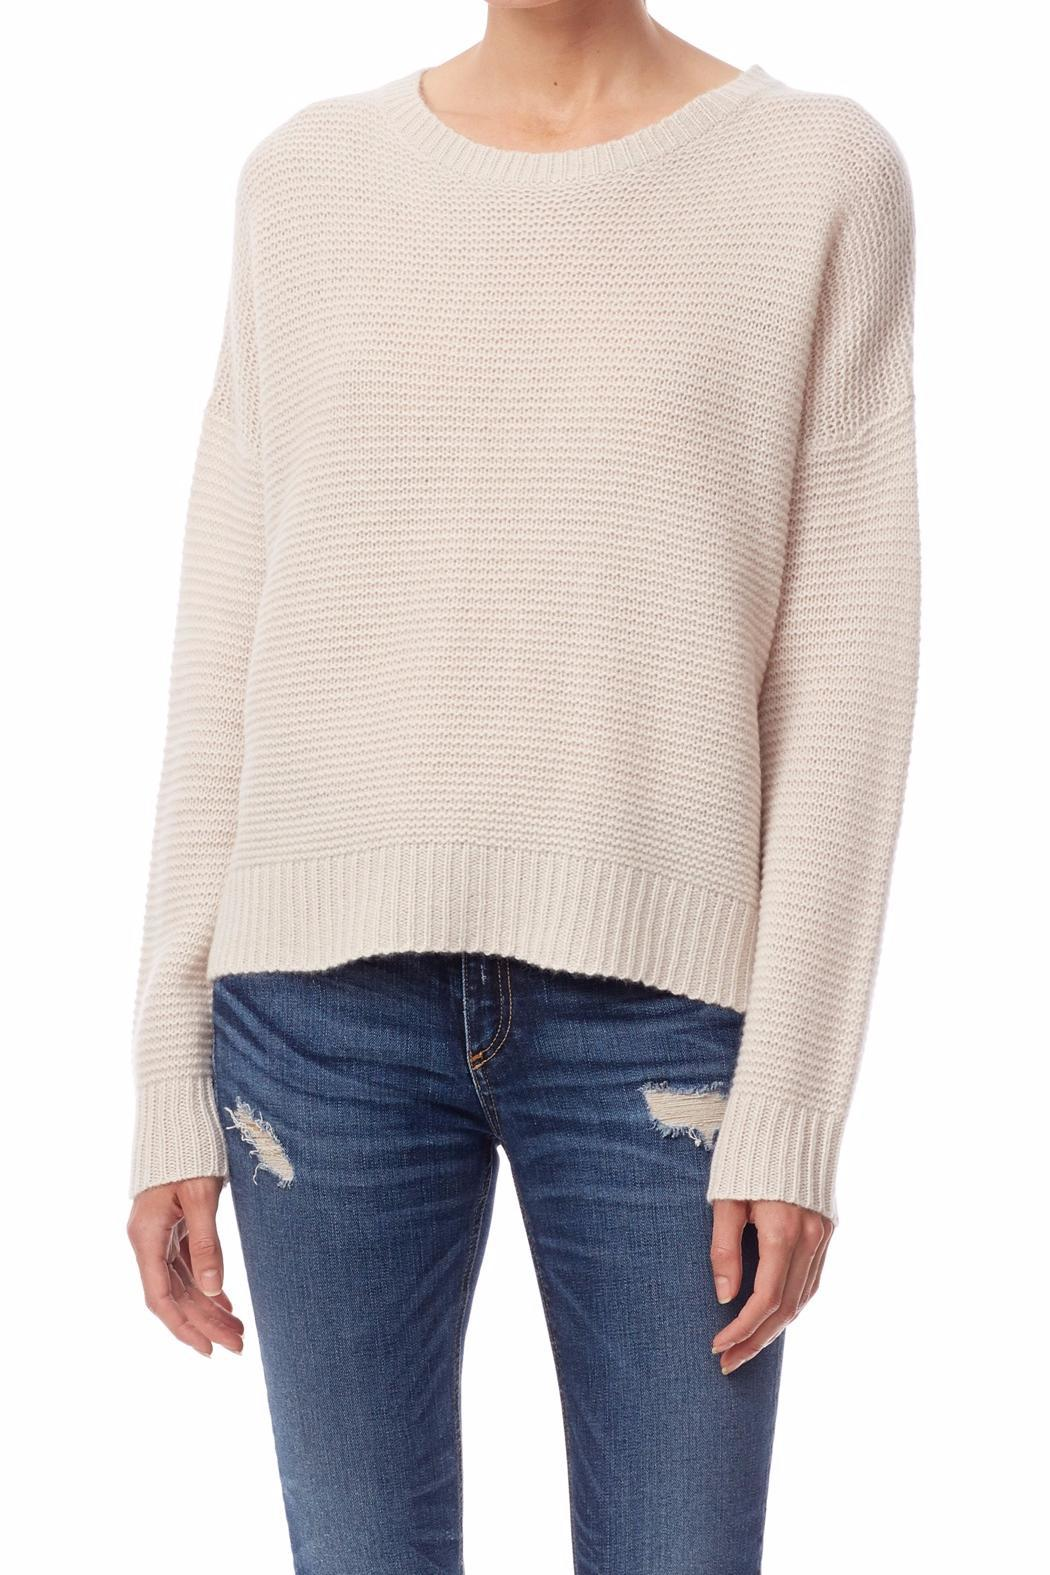 c91d75fac27 360 Cashmere Open Back Sweater from Houston by RainTree Boutique ...